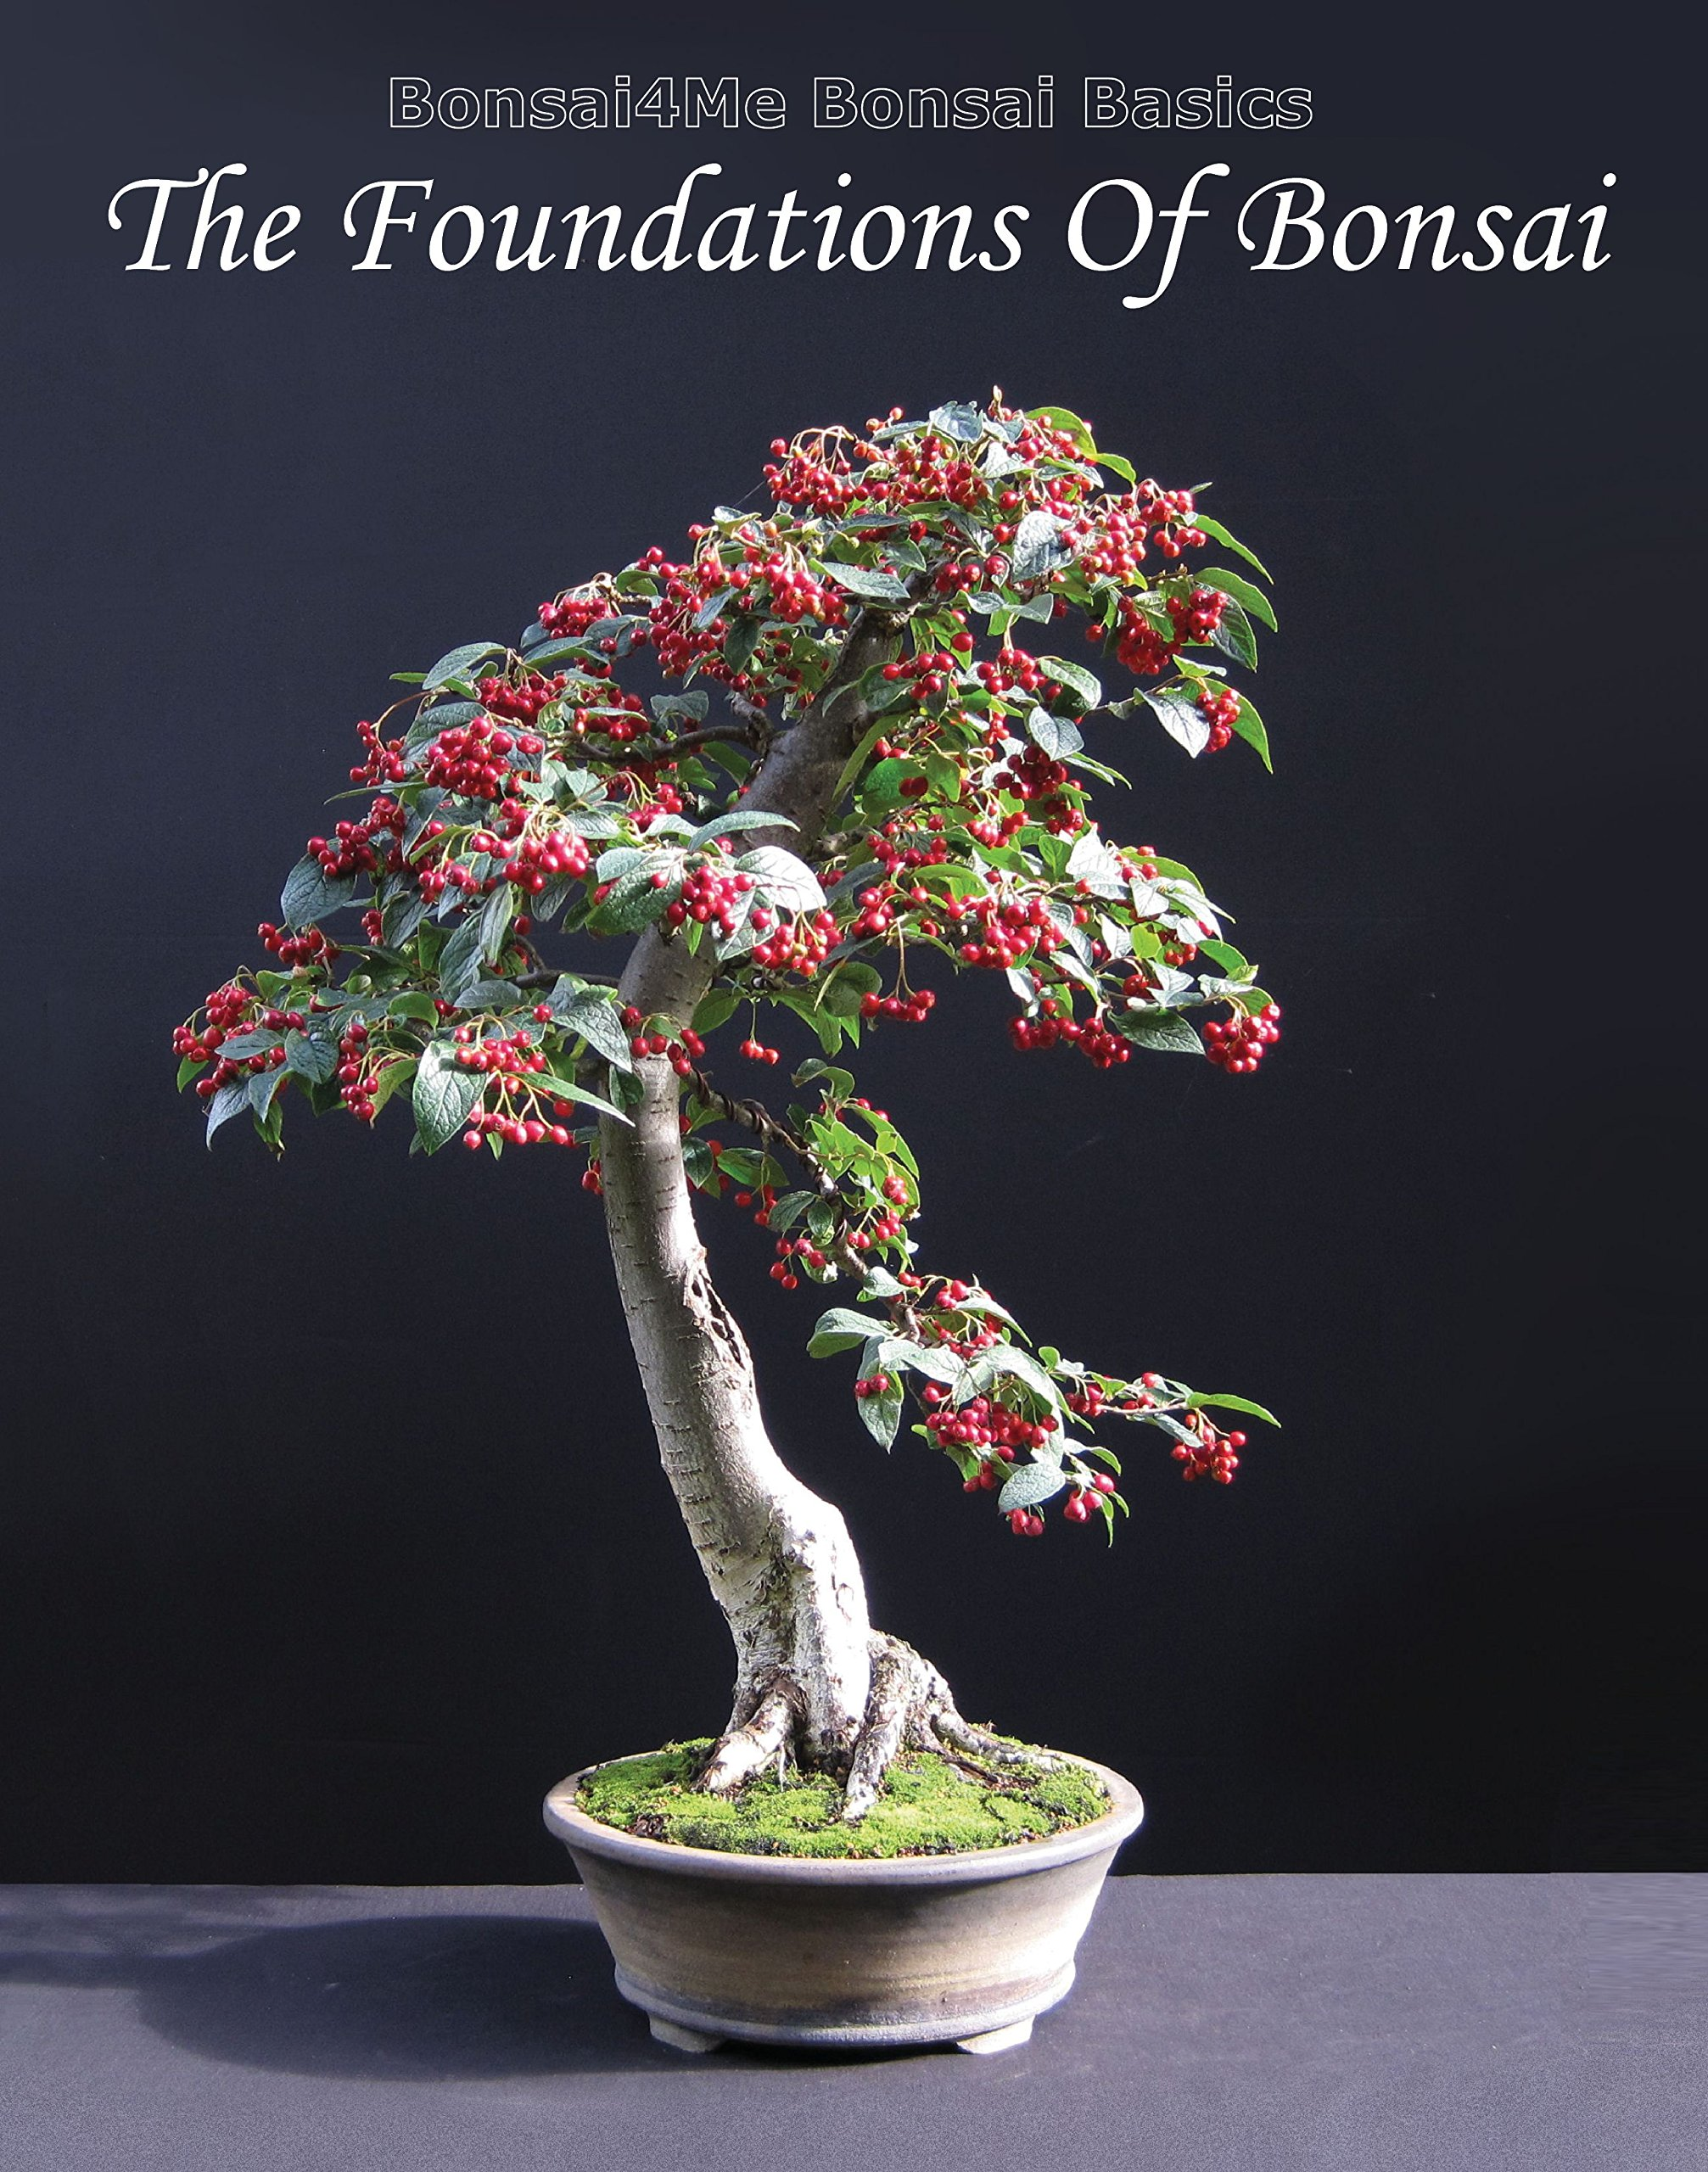 Bonsai4me Bonsai Basics Harry Harrington product image